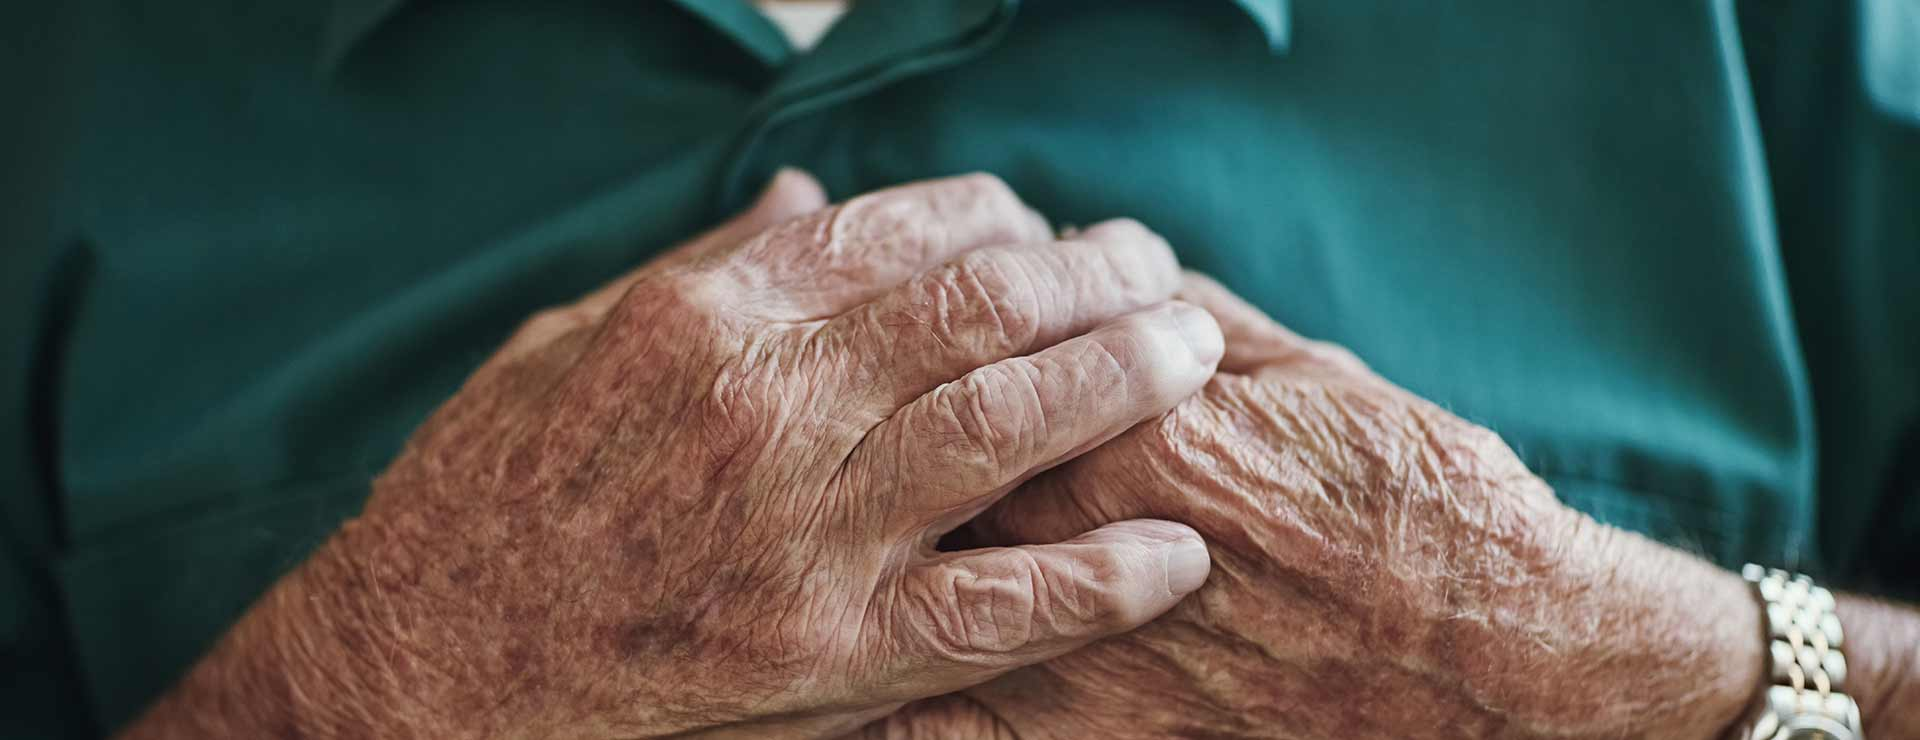 A senior man rests his hands on his chest.